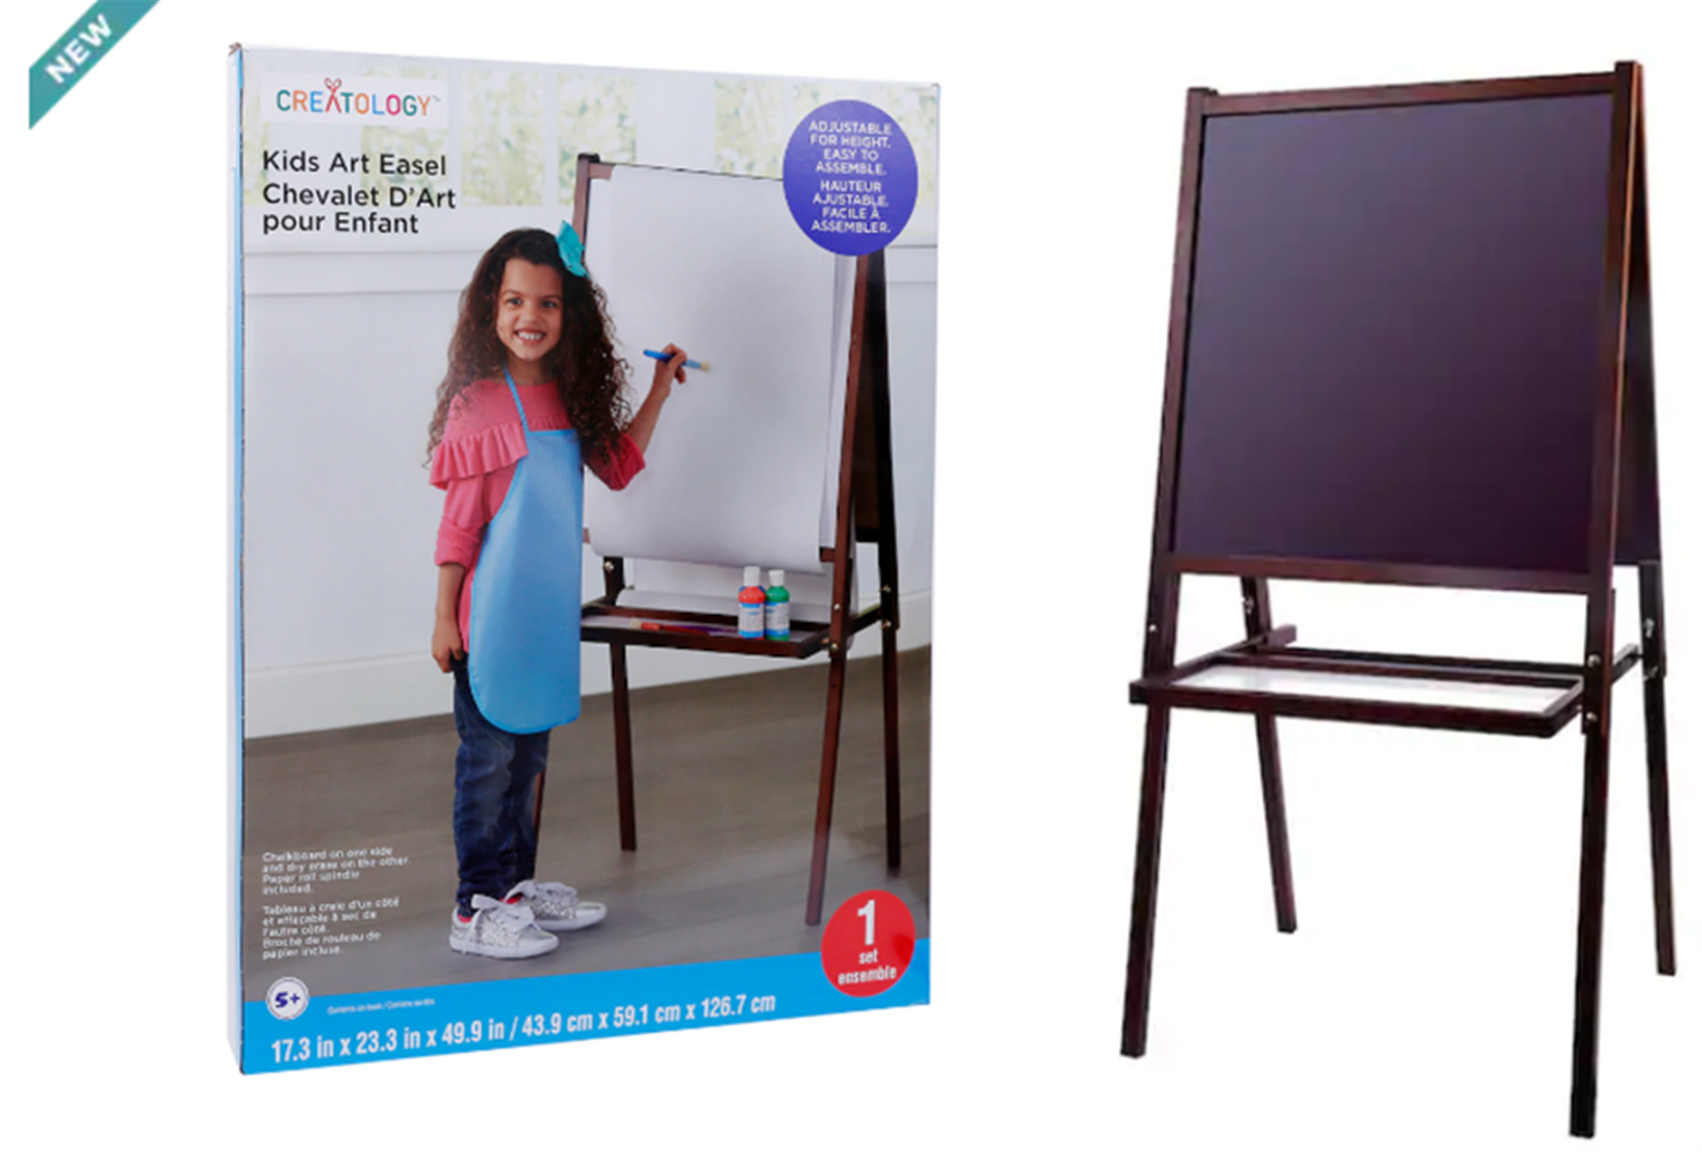 Michaels.com – $20 Off $50 Online Purchase + Additional 20% Off! Get The Kids Art Easel For $17.99 (Reg $69.99) + Free Store Pickup!